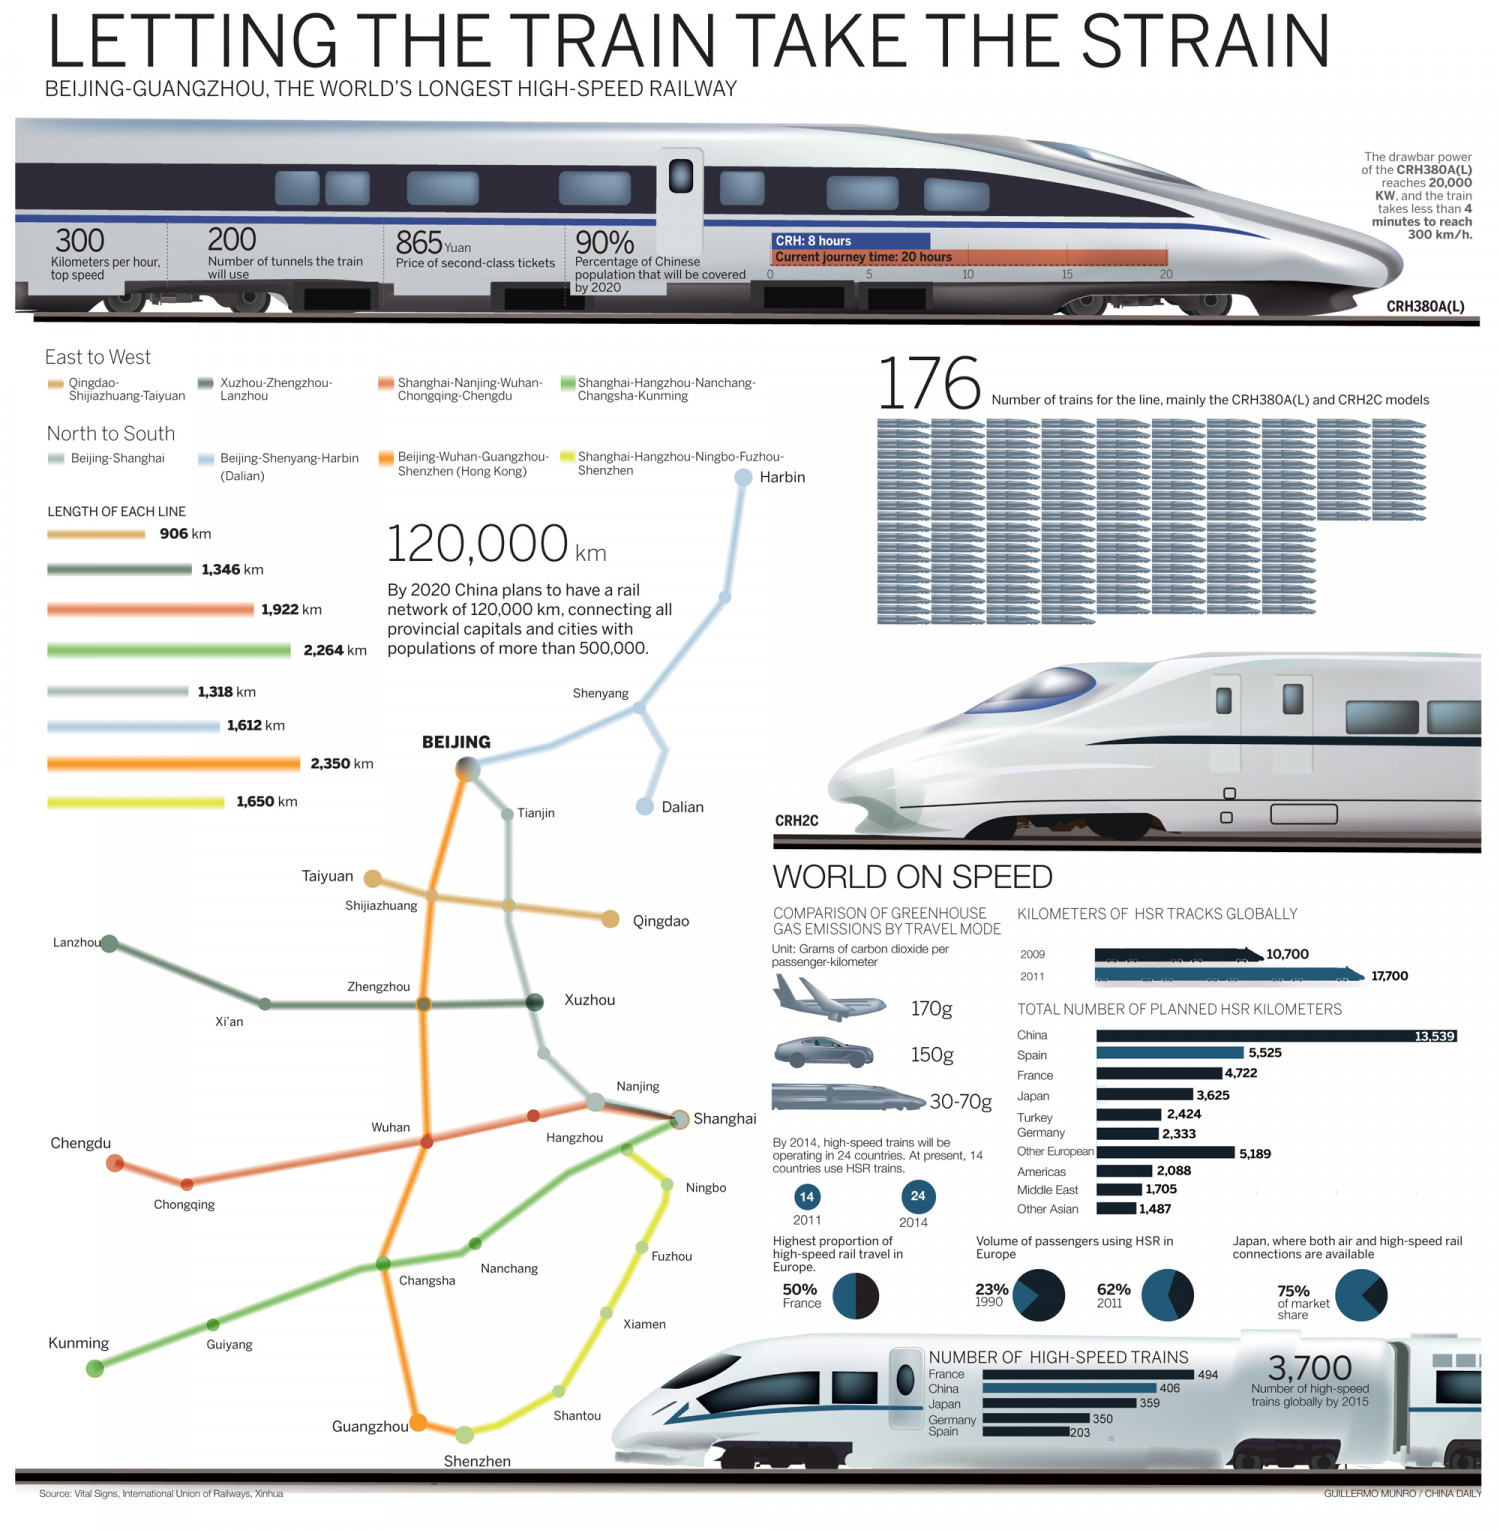 Let the train take the strain Infographic